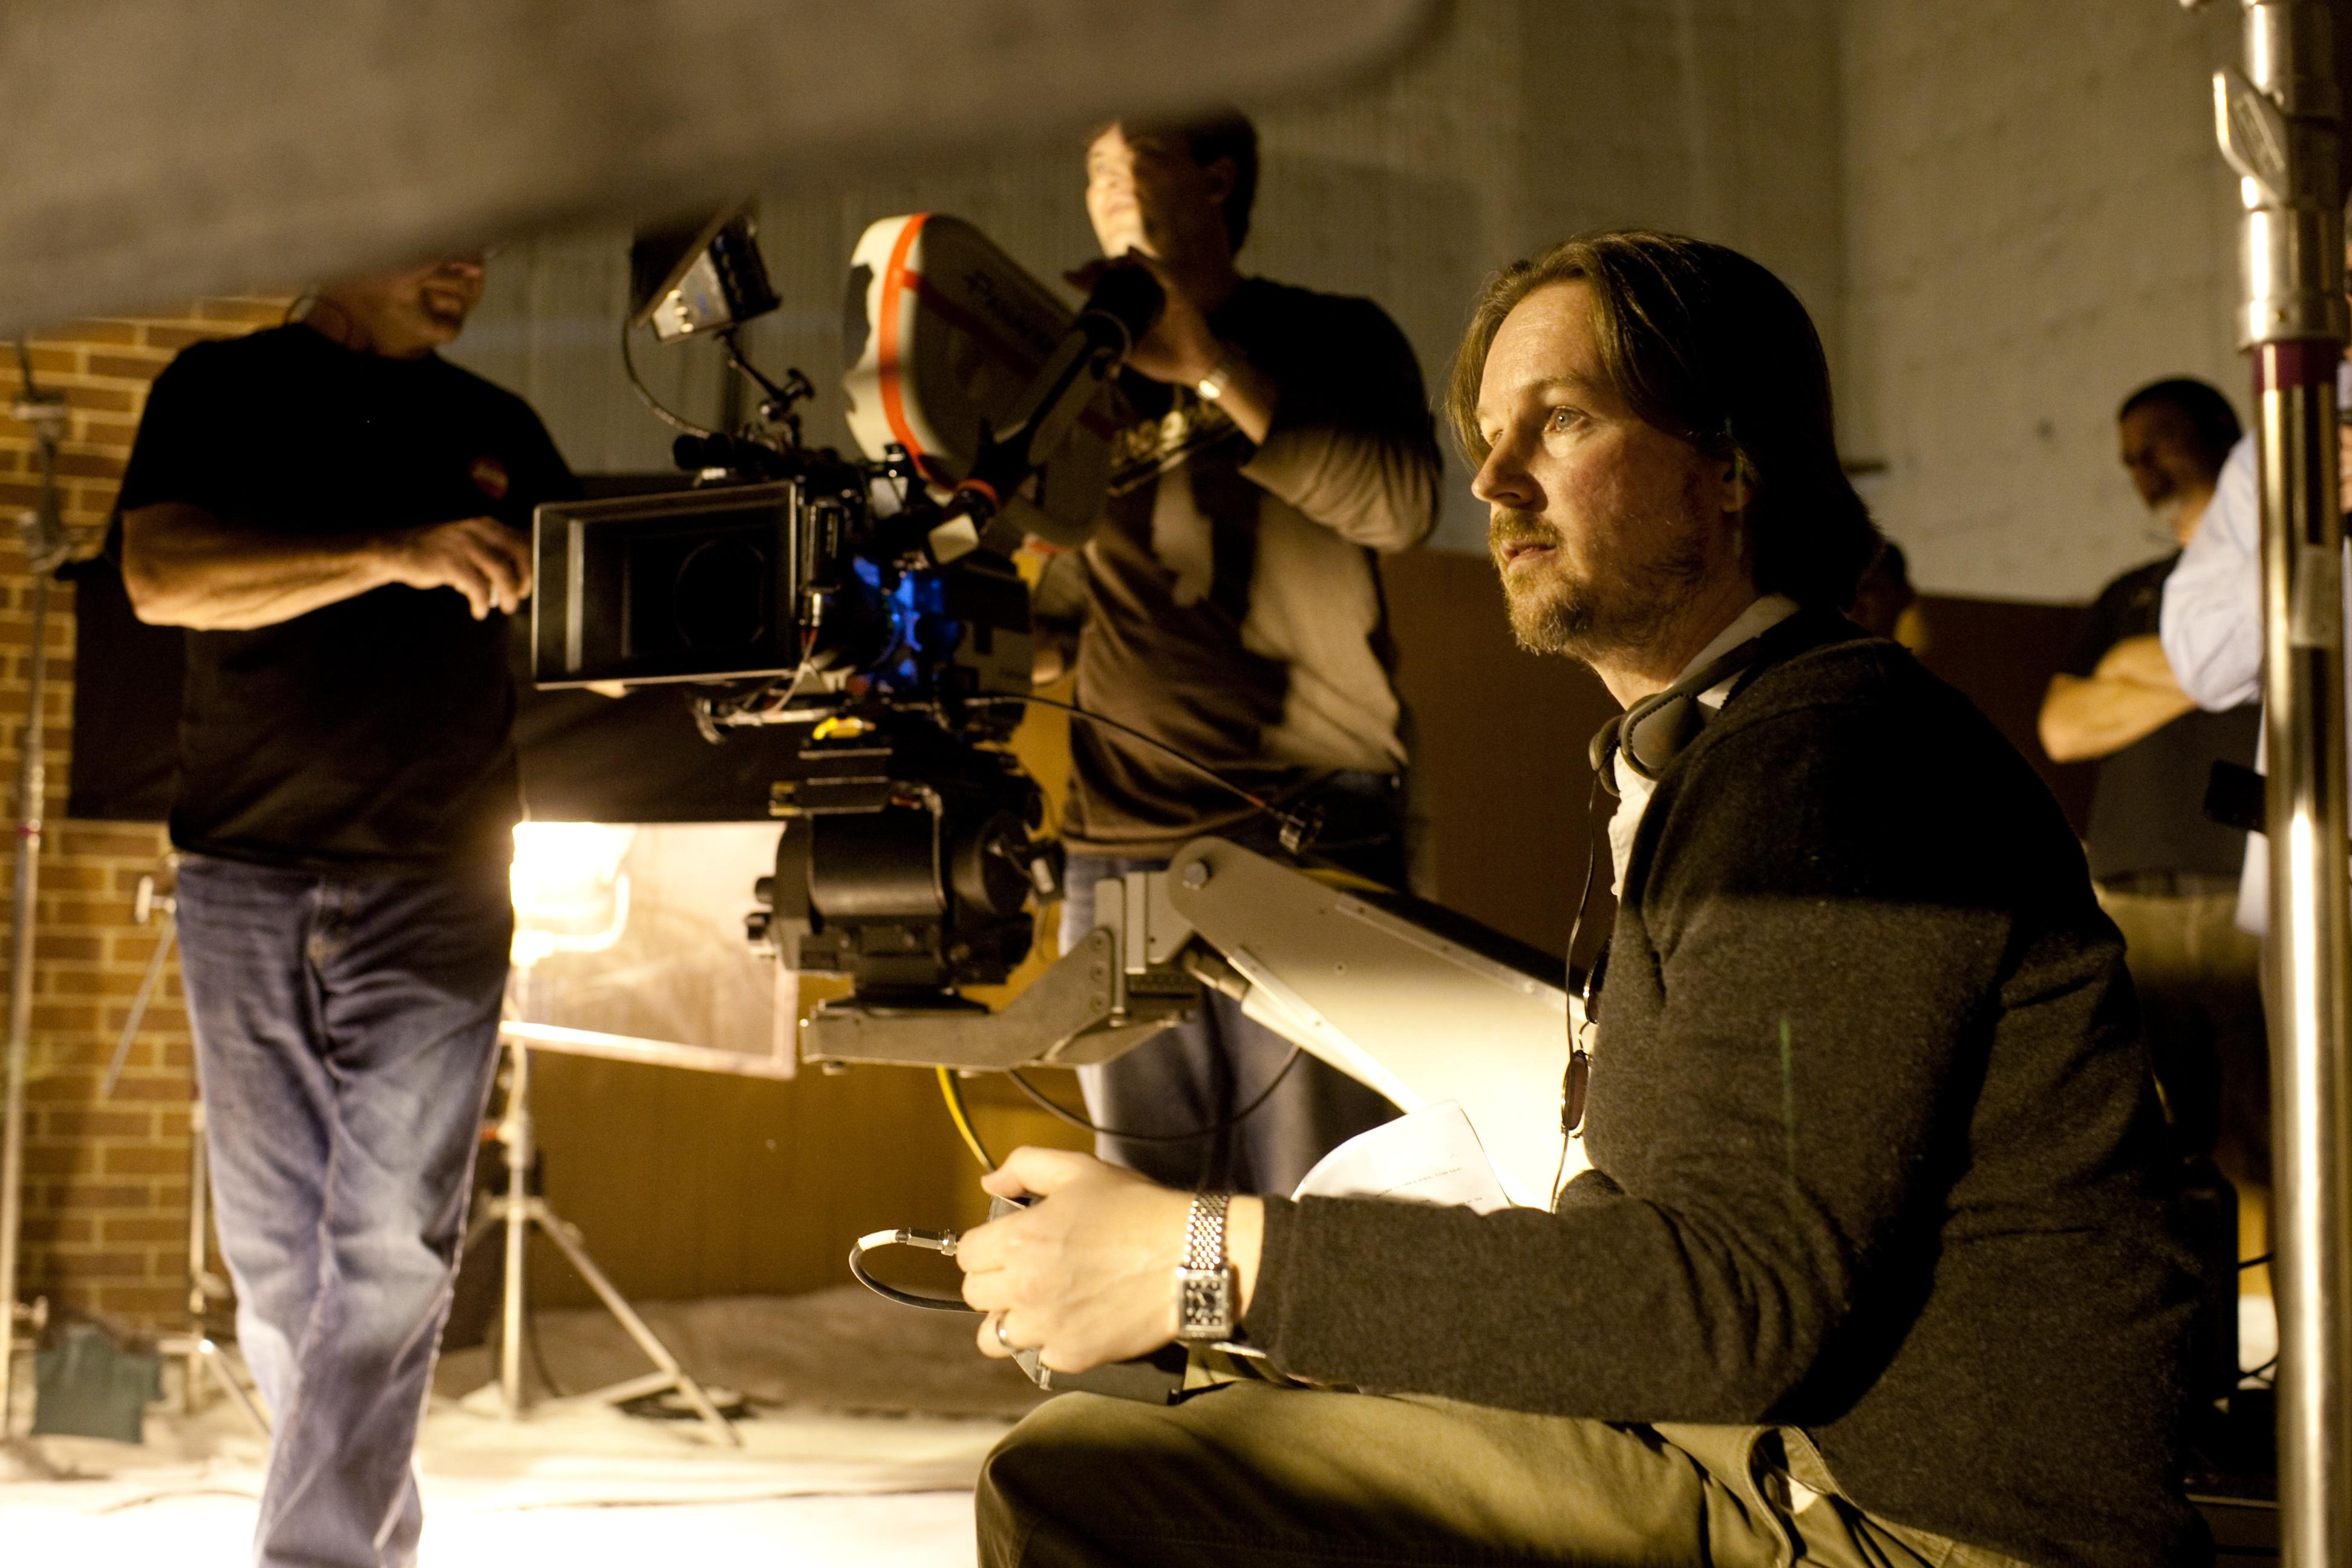 dawn planet apes director hopes film sci fi thriller invisible woman soon matt reeves let me in